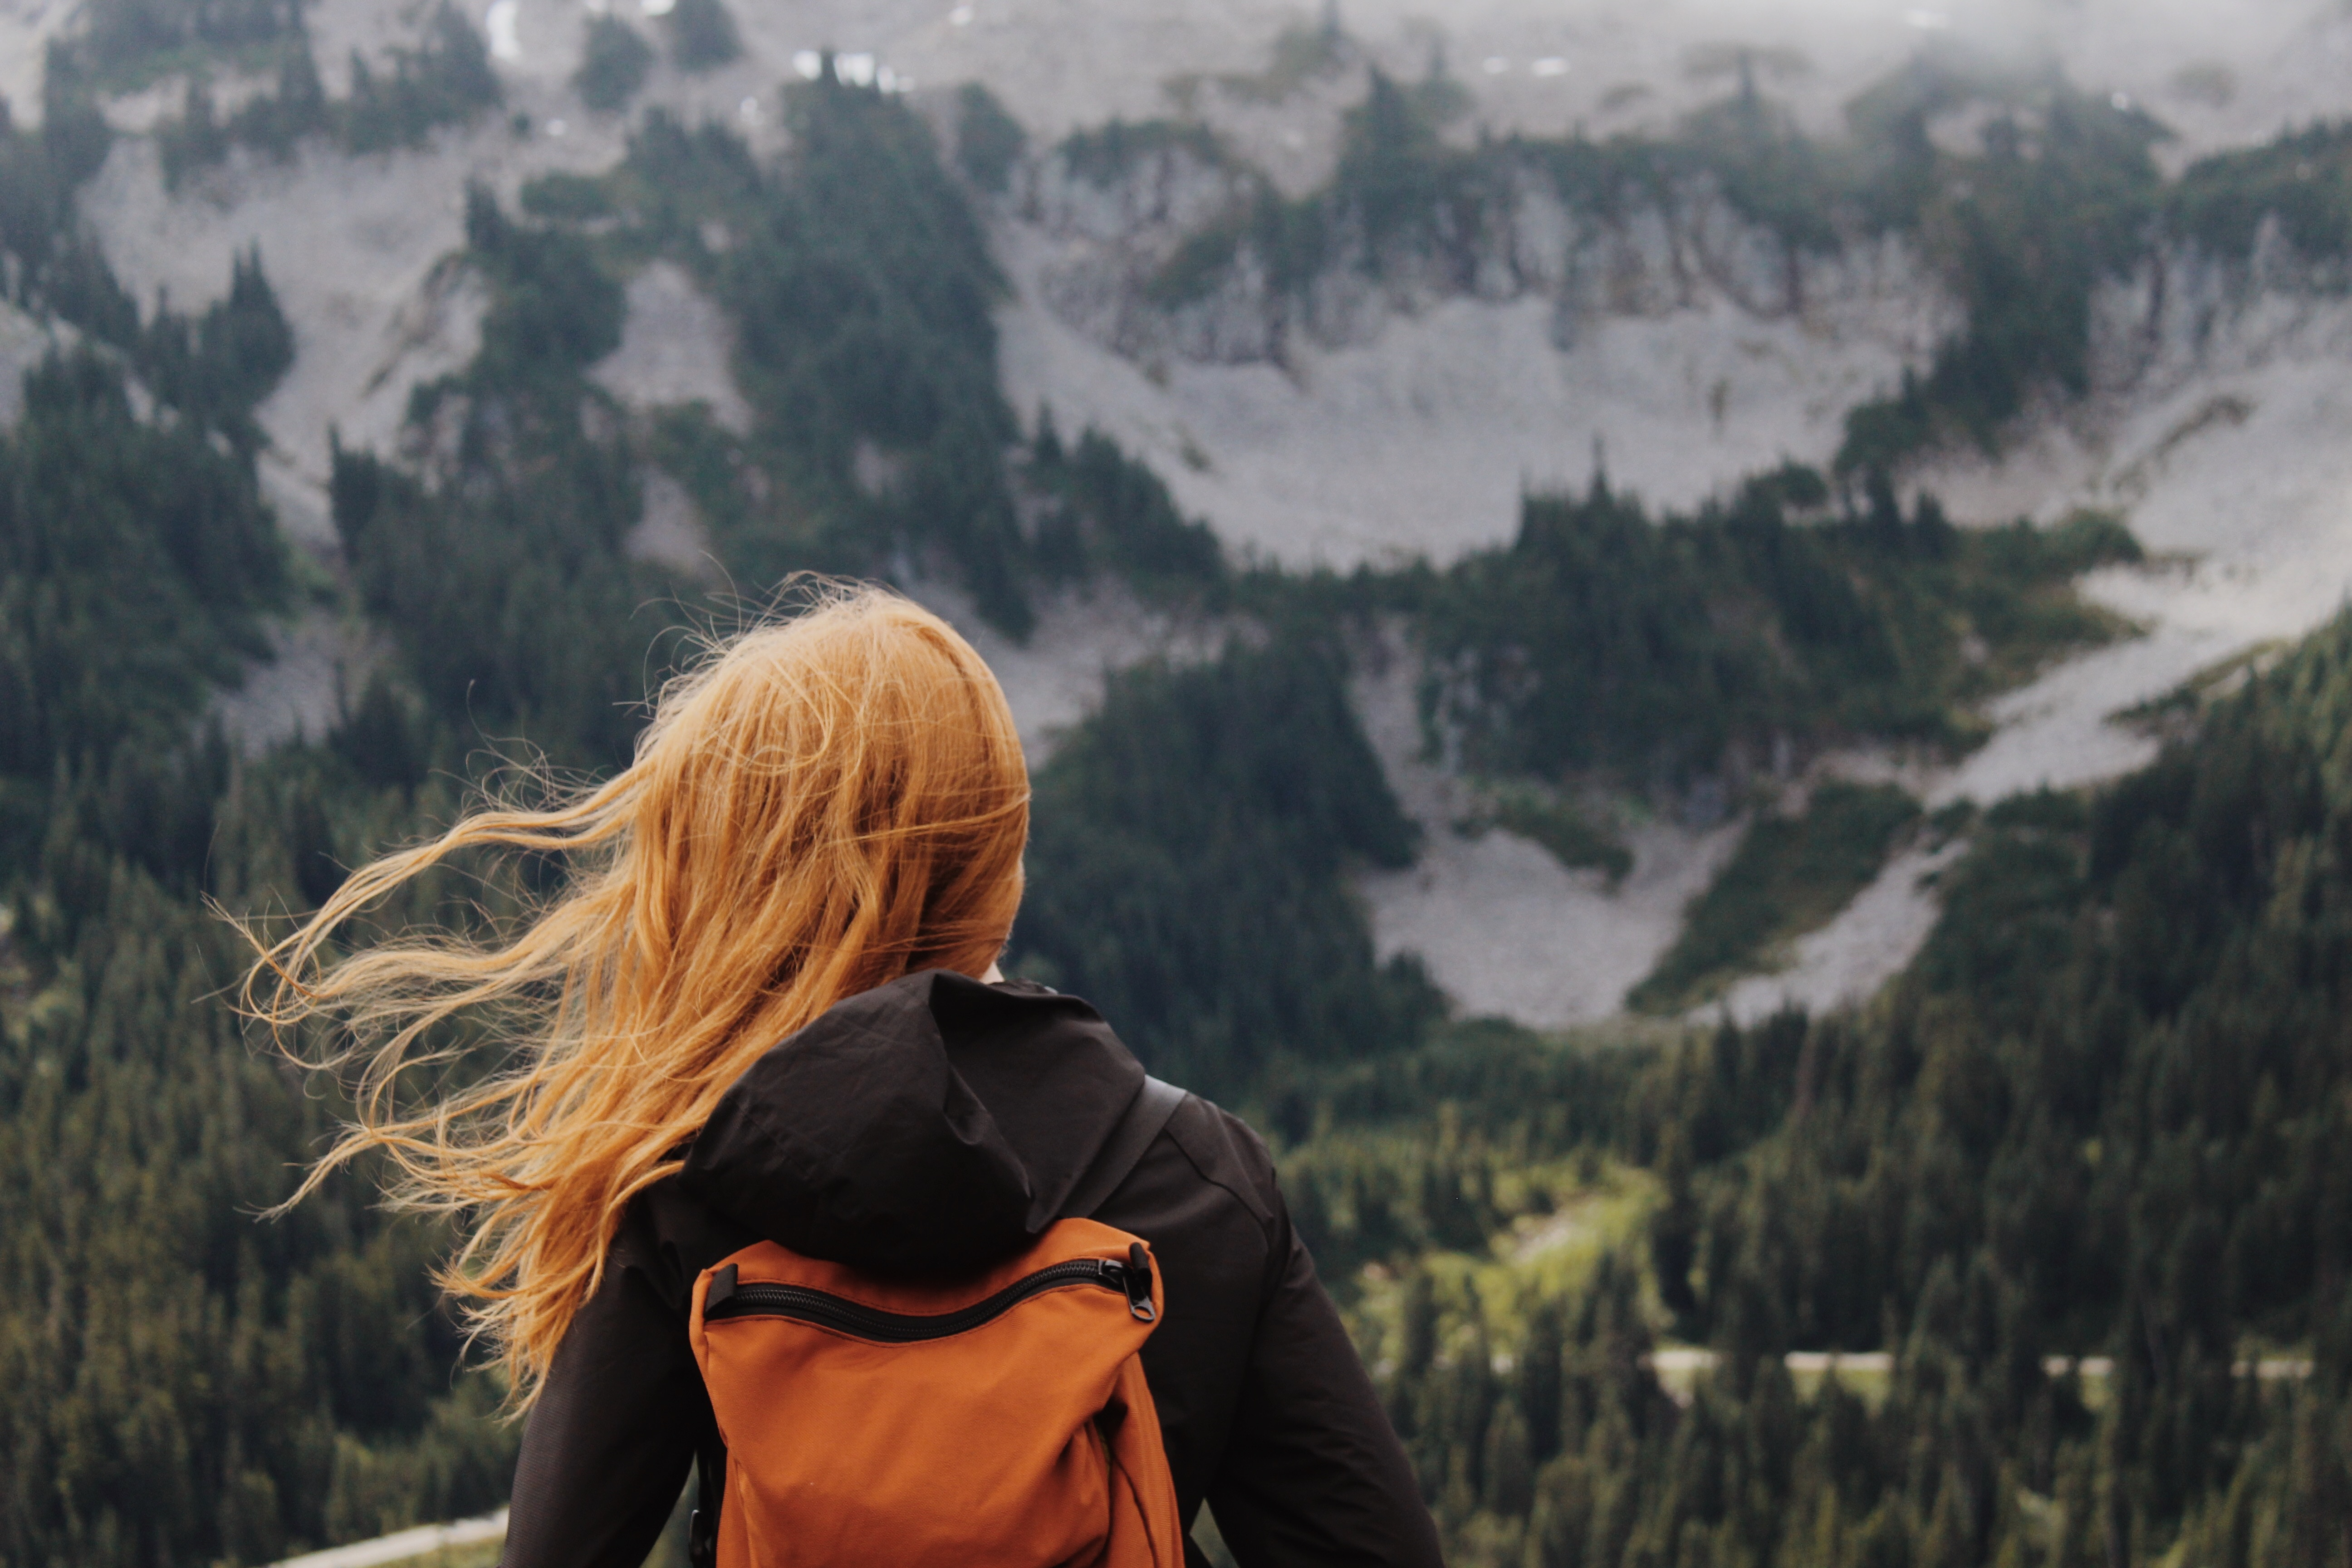 Solo Travel As A Young Woman: Expectations vs. Reality